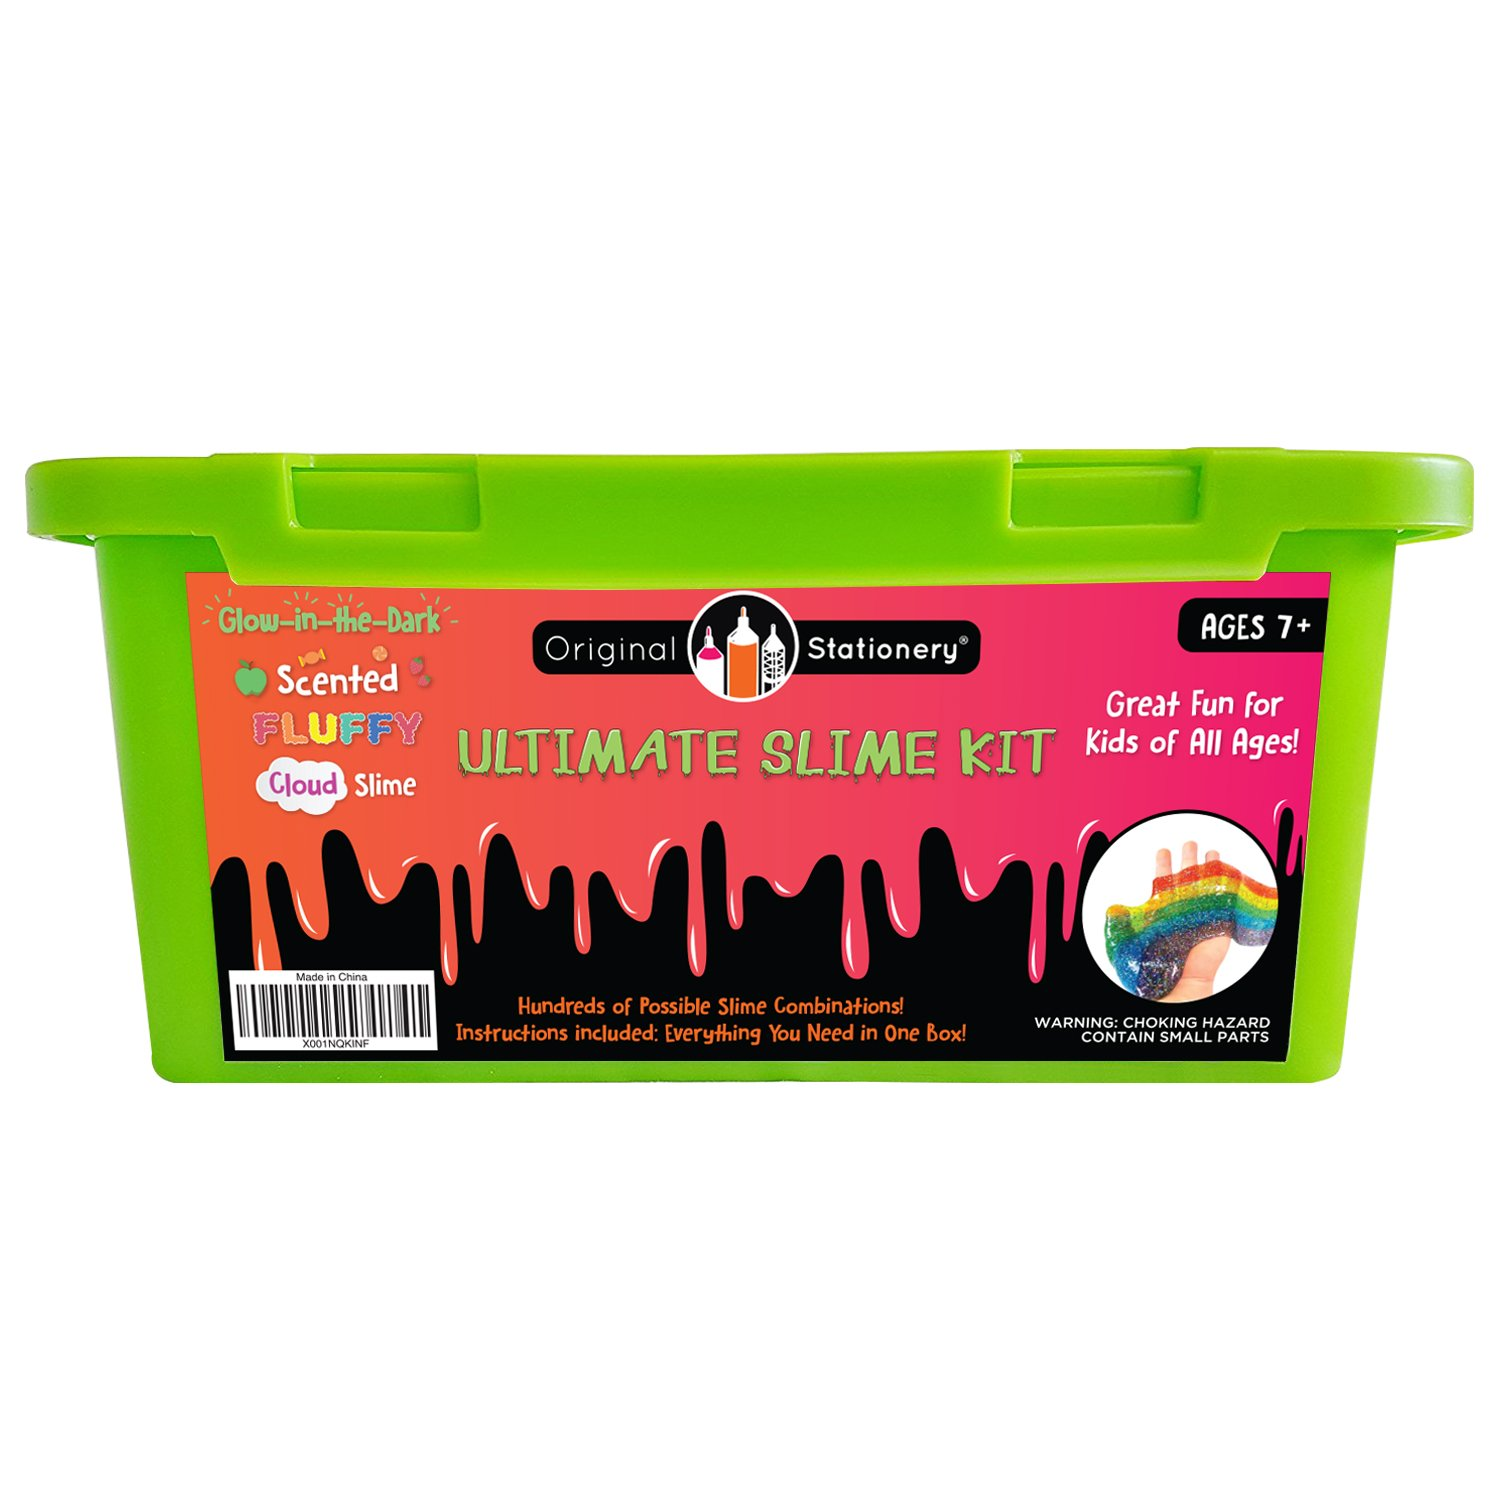 Ultimate Slime Kit Supplies Stuff for Girls and Boys Making Slime [EVERYTHING IN ONE BOX] Kids can Make Unicorn, Glitter, Cloud, Rainbow Slimes and More. Includes Glue and Full instructions. by Original Stationery (Image #1)